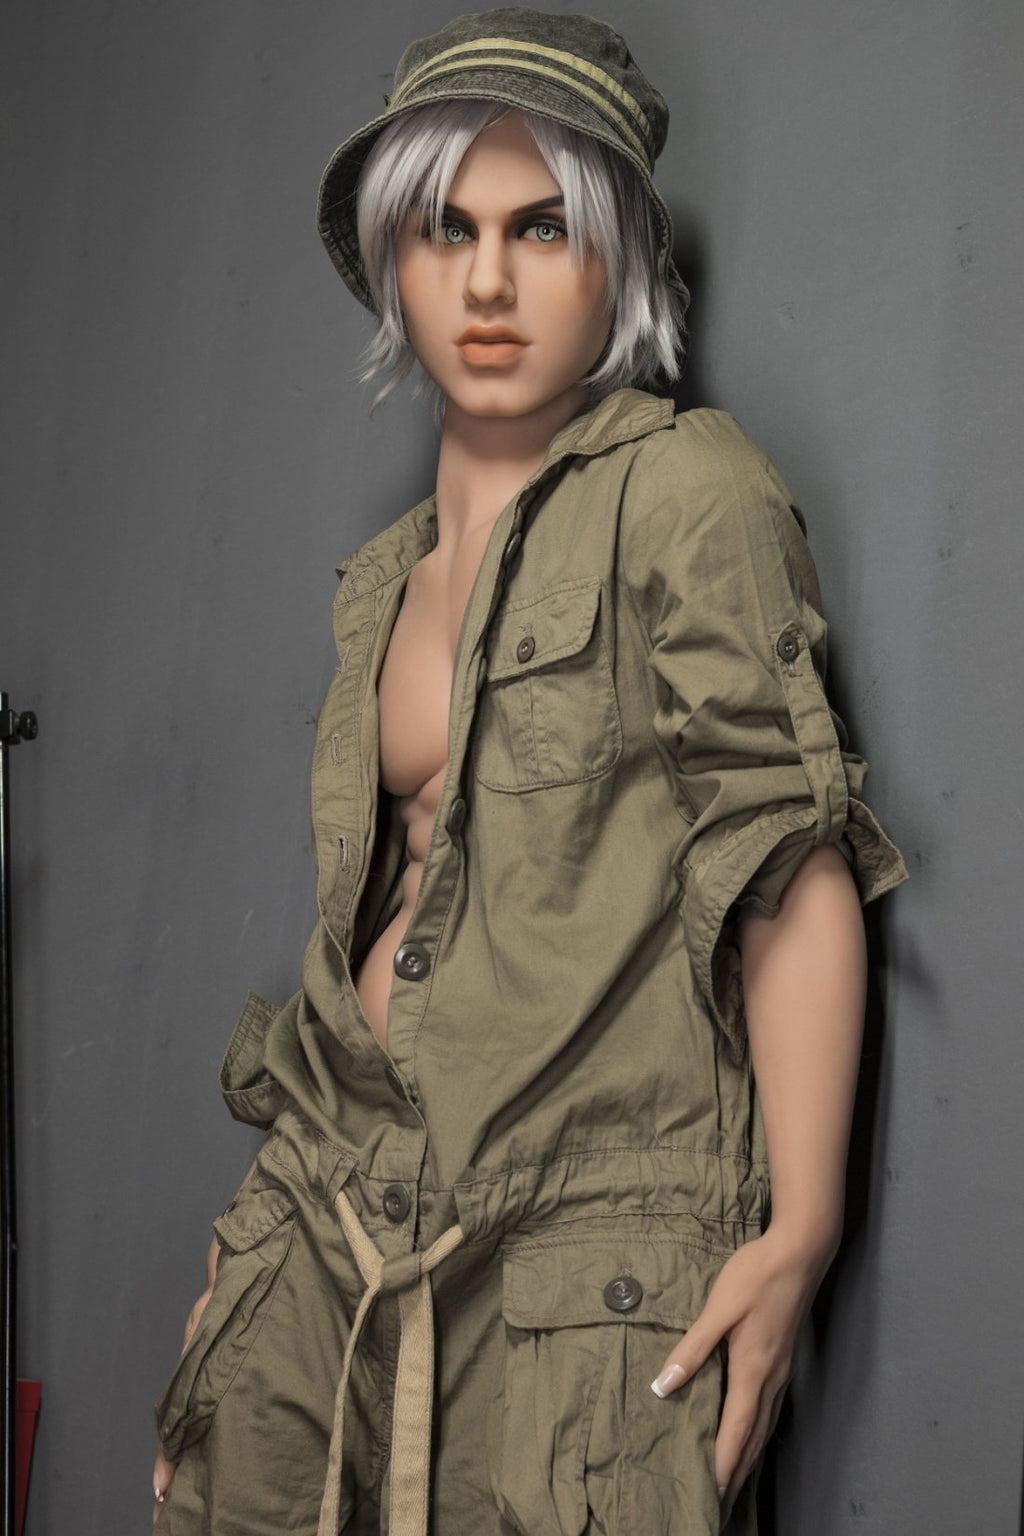 michael 160cm male blonde male tan skin tpe wm gay boy sex doll